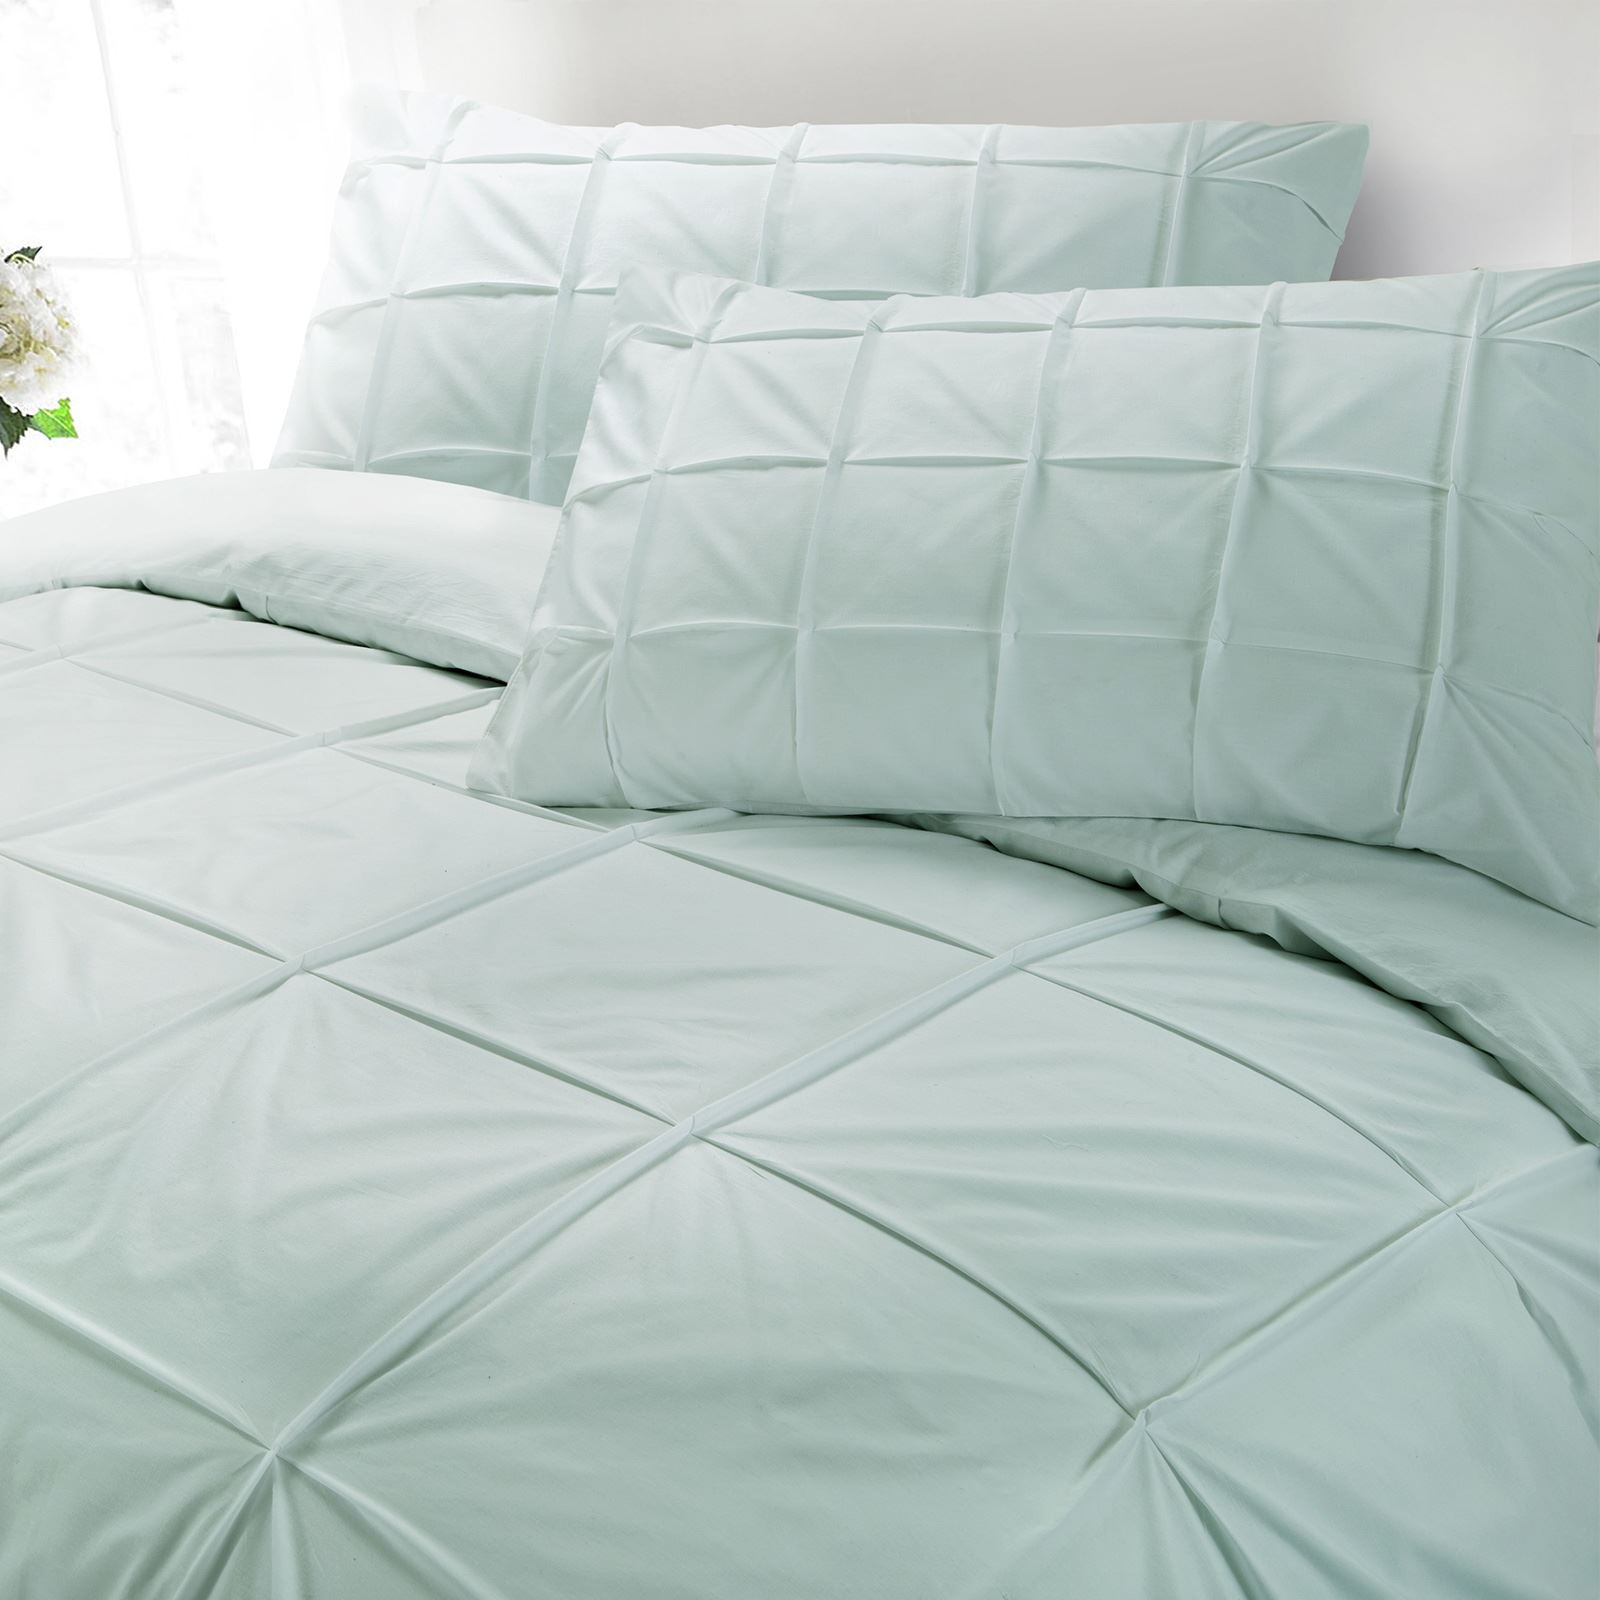 Cartier-100-Egyptian-Cotton-200-Thread-Percale-Pintuck-Duvet-Cover-Bedding-Set thumbnail 9